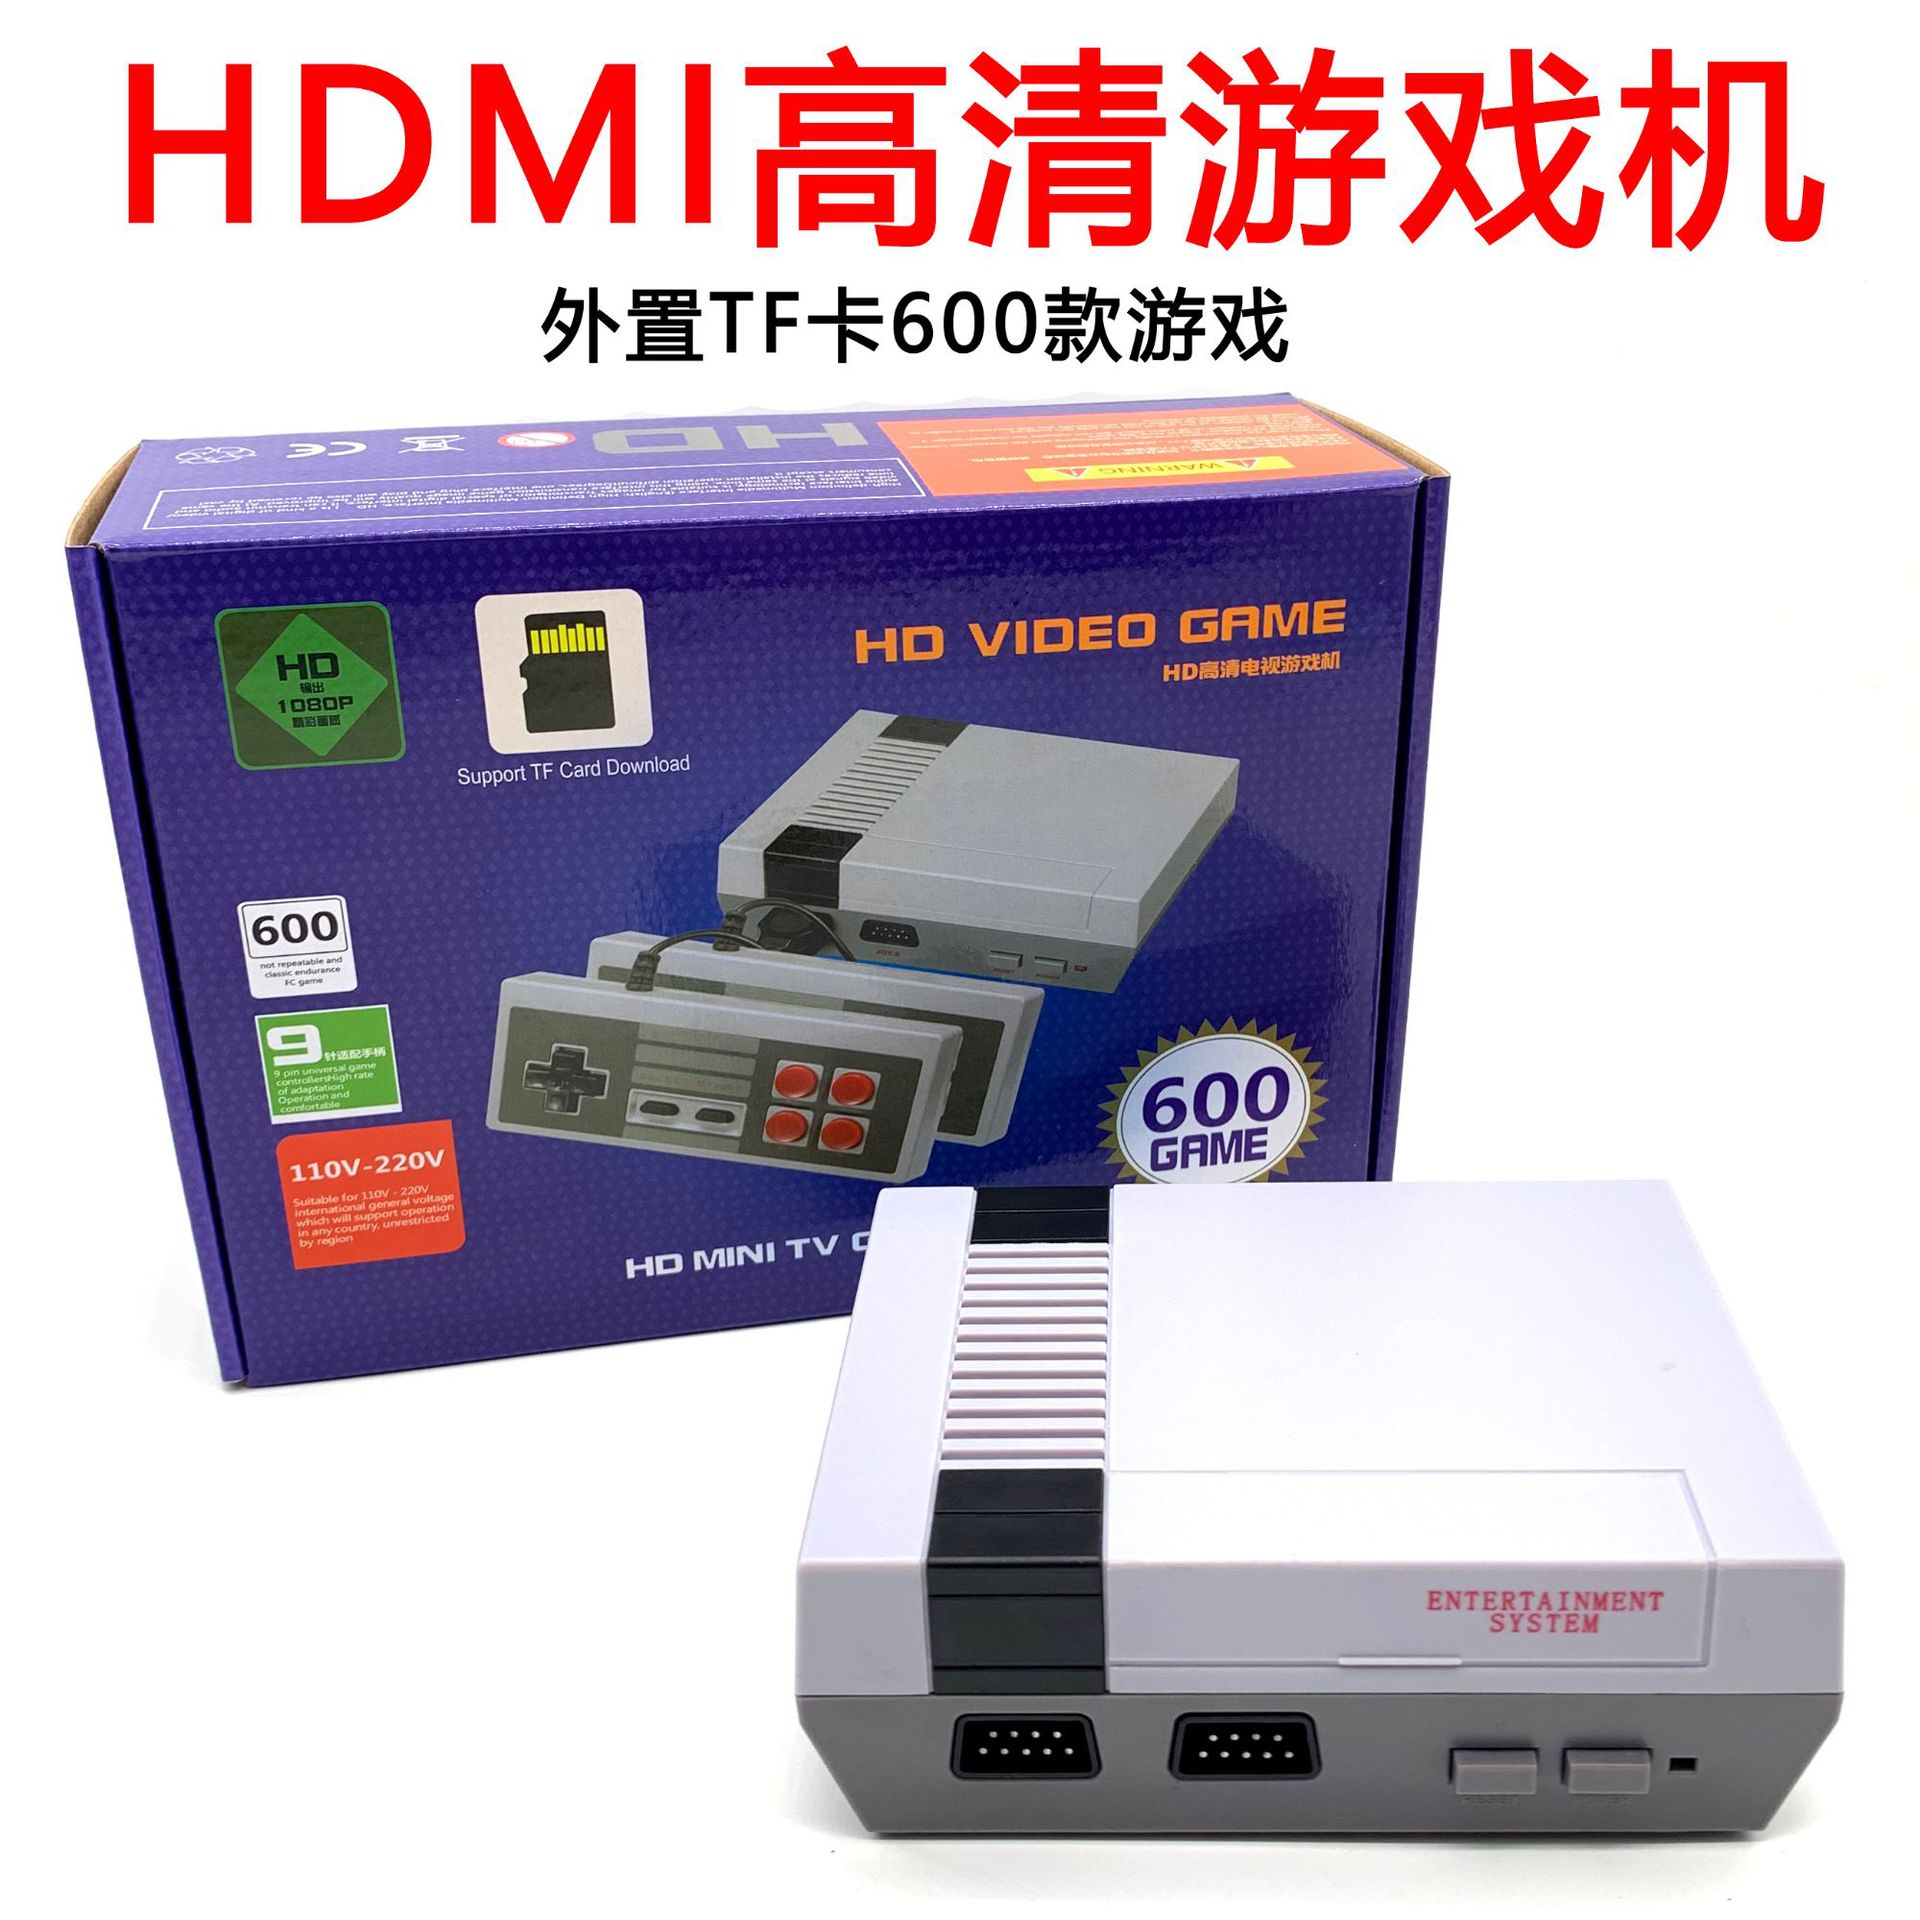 Dropshipping HDMI Output Mini TV Handheld Retro Video Game Console with Classic 600 Games  for 4K TV PAL & NTSC Support Tf Card